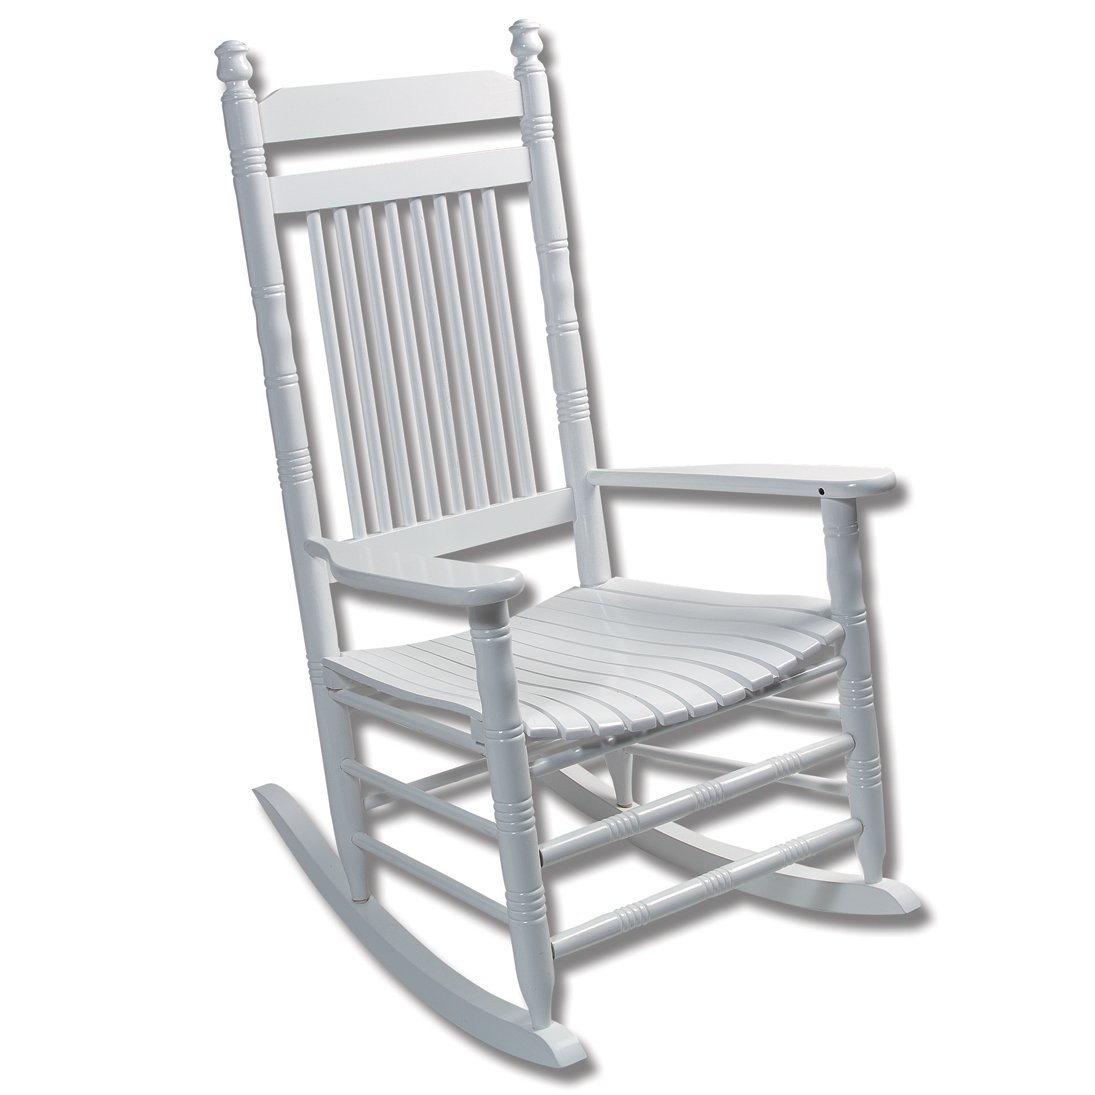 Cracker Barrell Rocking Chair - Rocking Chair 2017